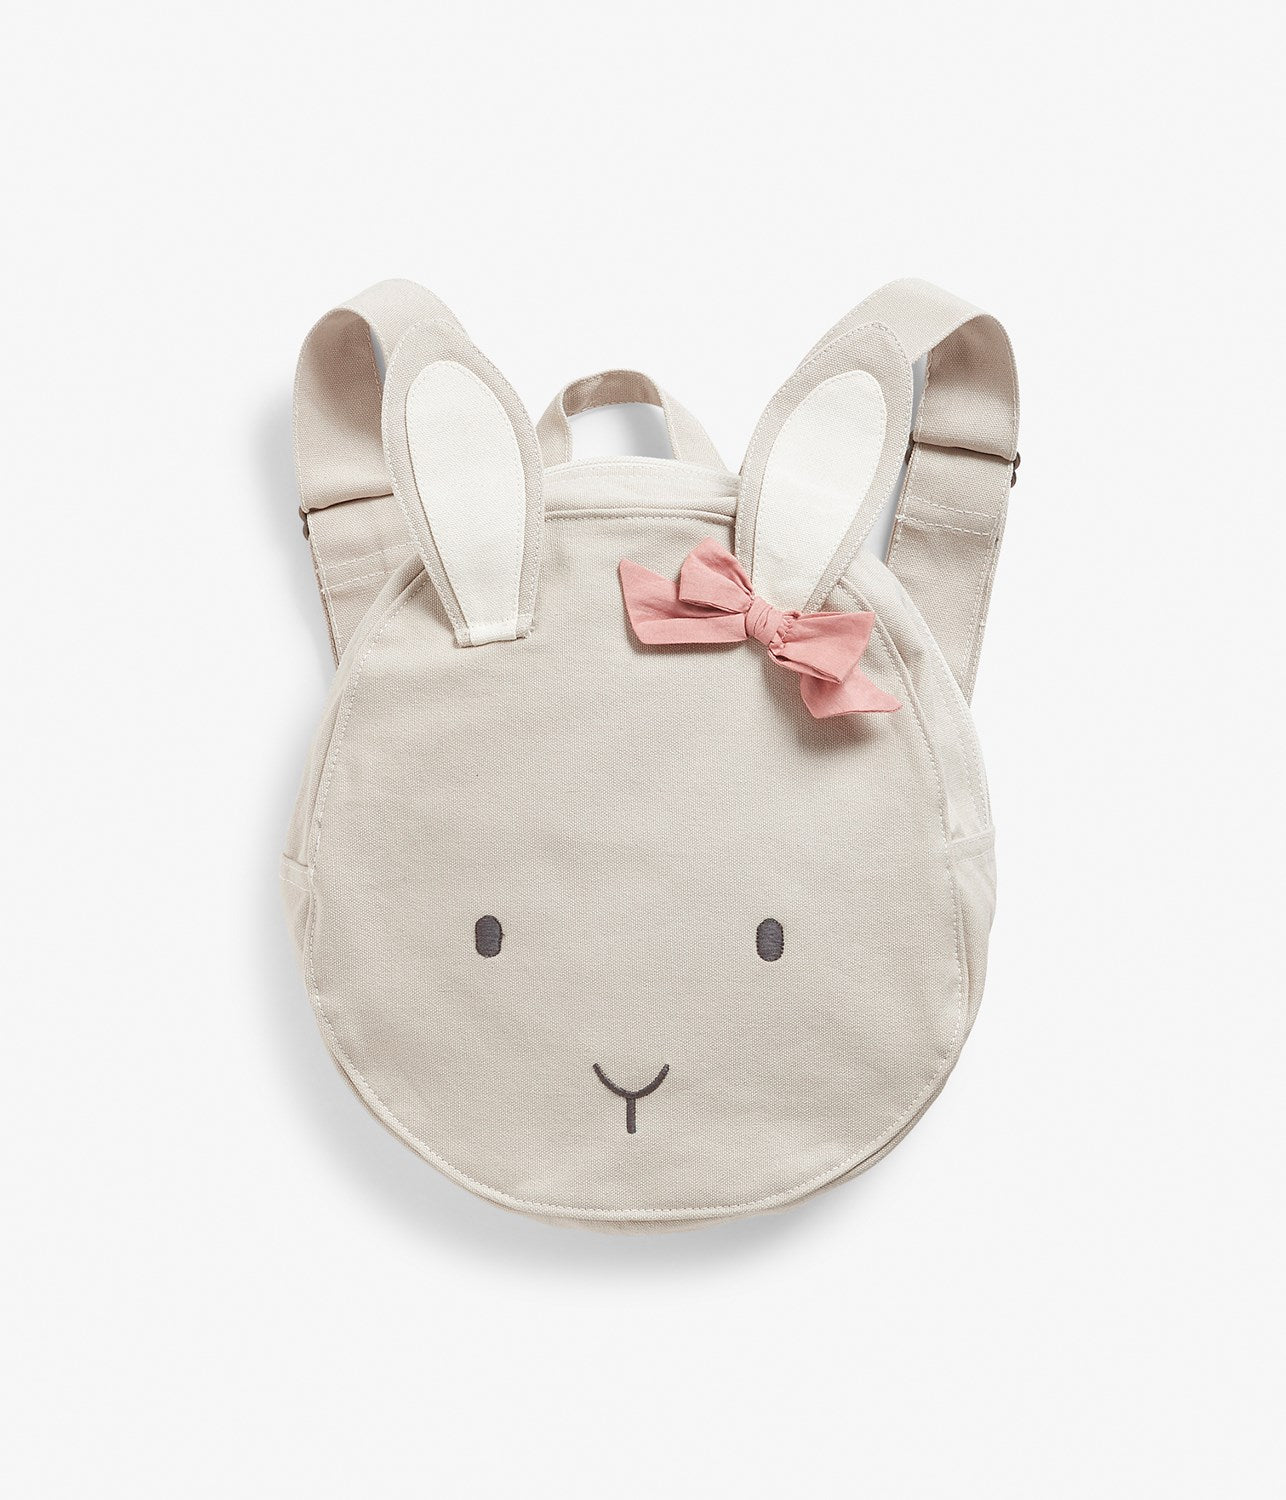 Circle rabbit backpack with bow